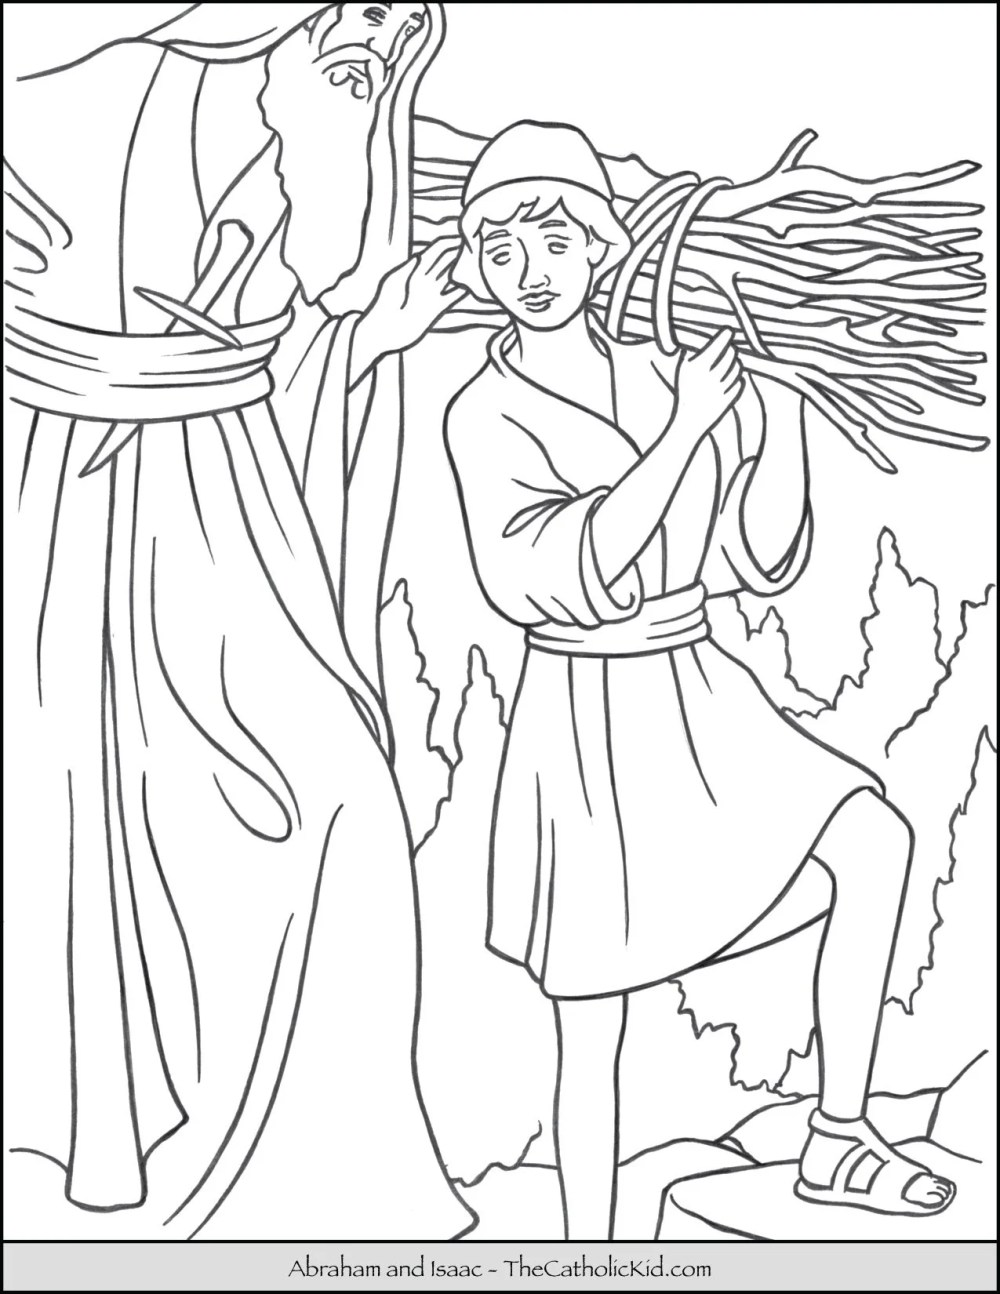 medium resolution of Abraham and Isaac Coloring Page - TheCatholicKid.com